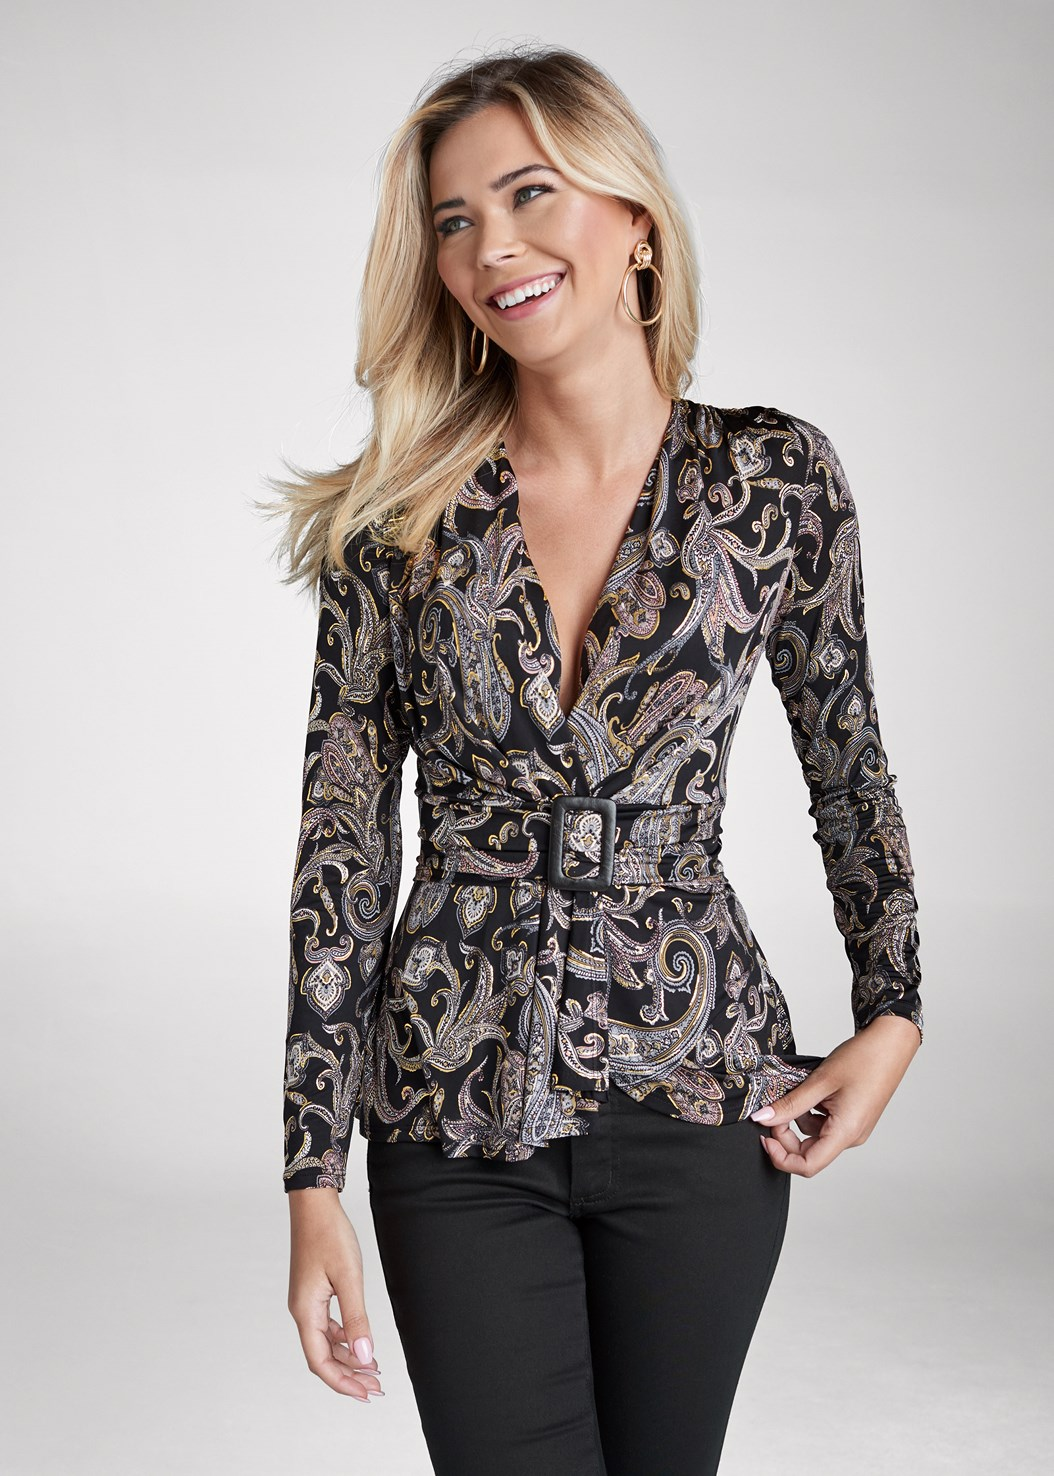 Paisley Print Belted Top,Mid Rise Color Skinny Jeans,Kissable Convertible Bra